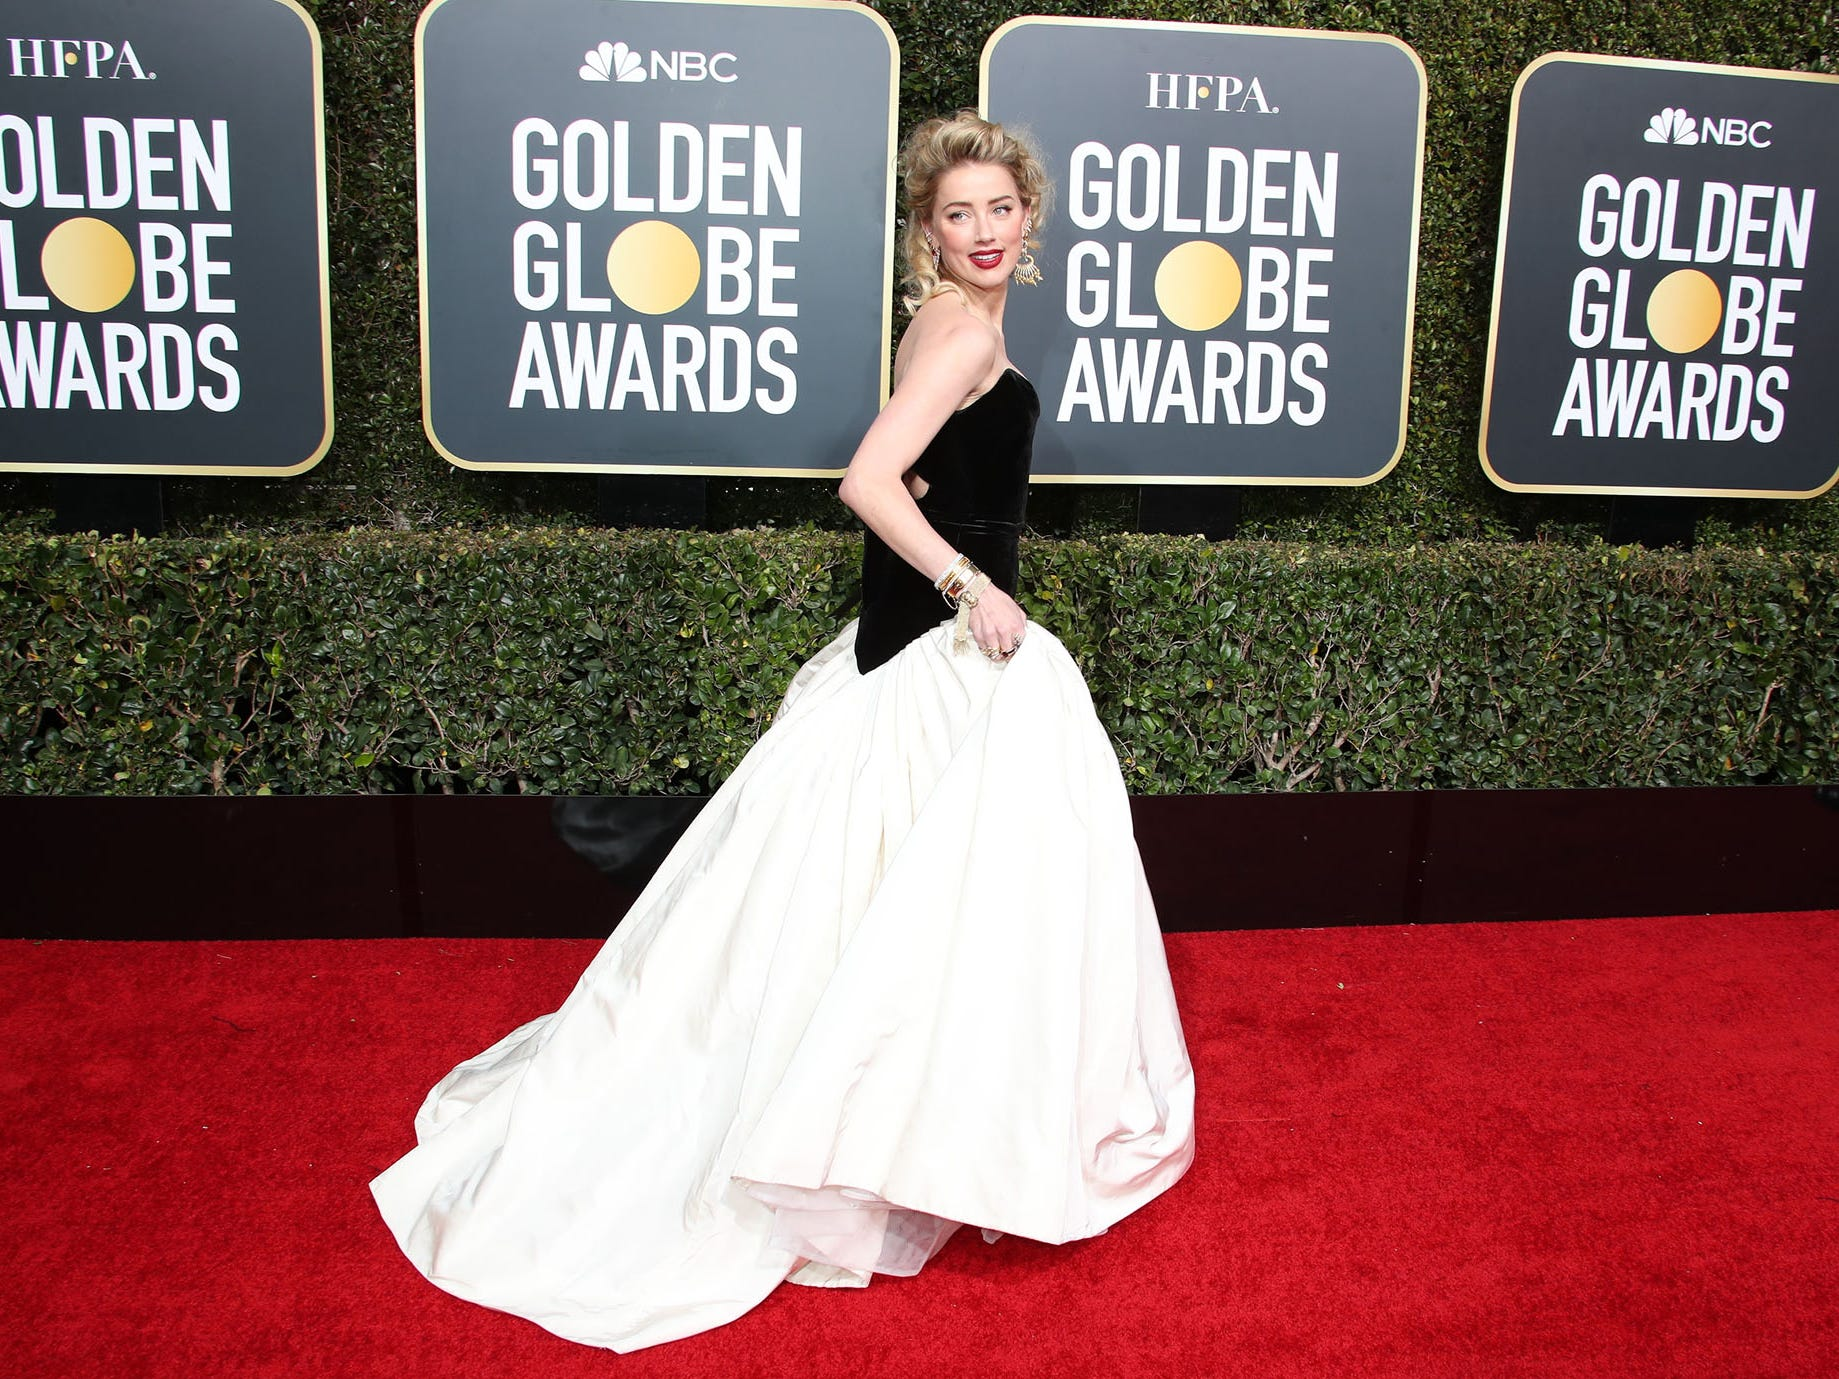 Amber Heard arrives on the 76th Golden Globe Awards red carpet.